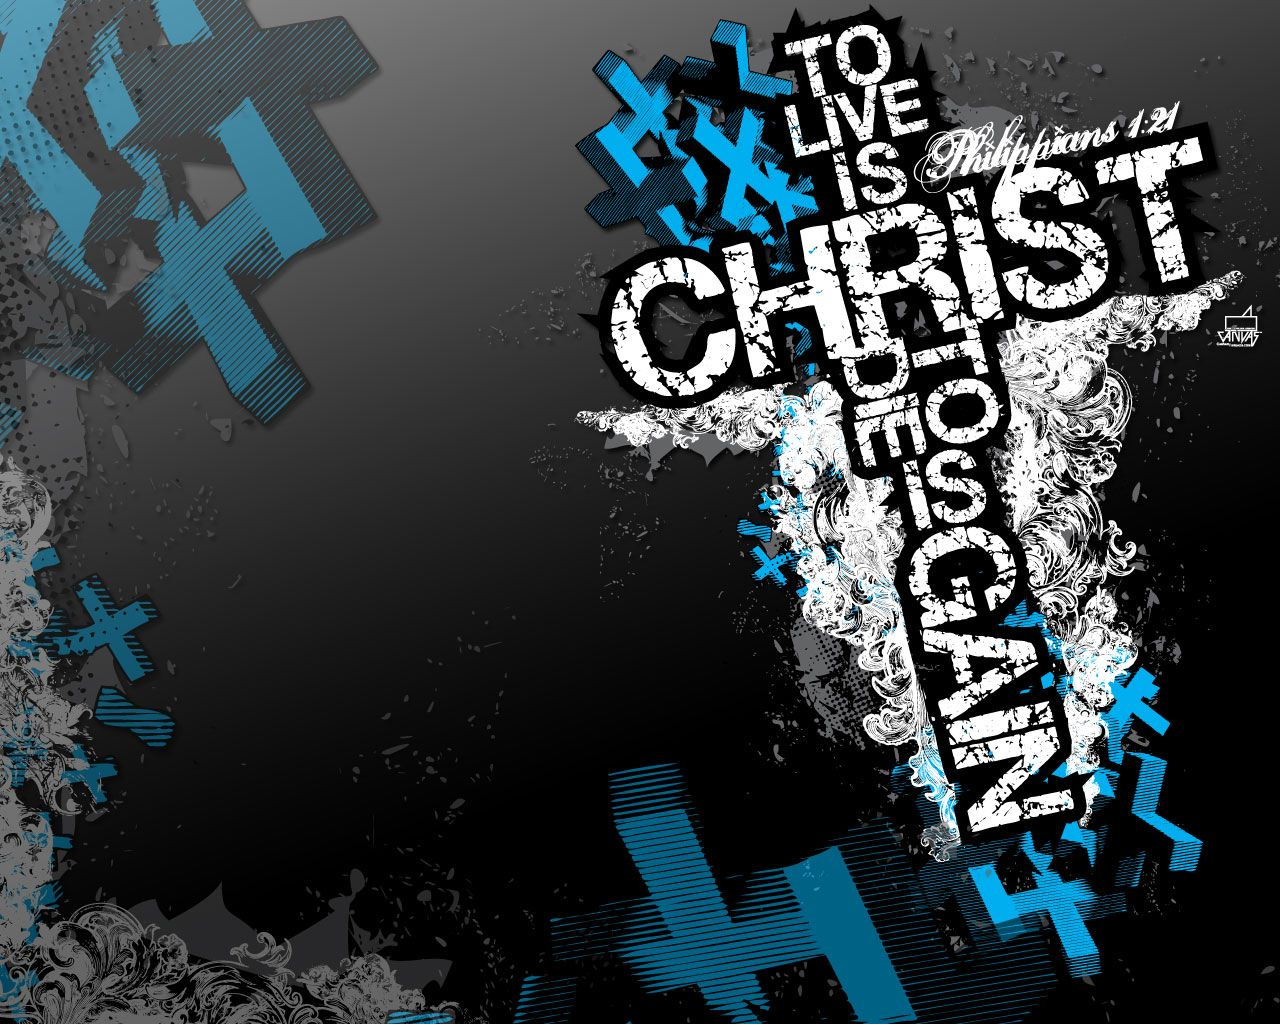 christian youth wallpaper 19202151080 christian youth